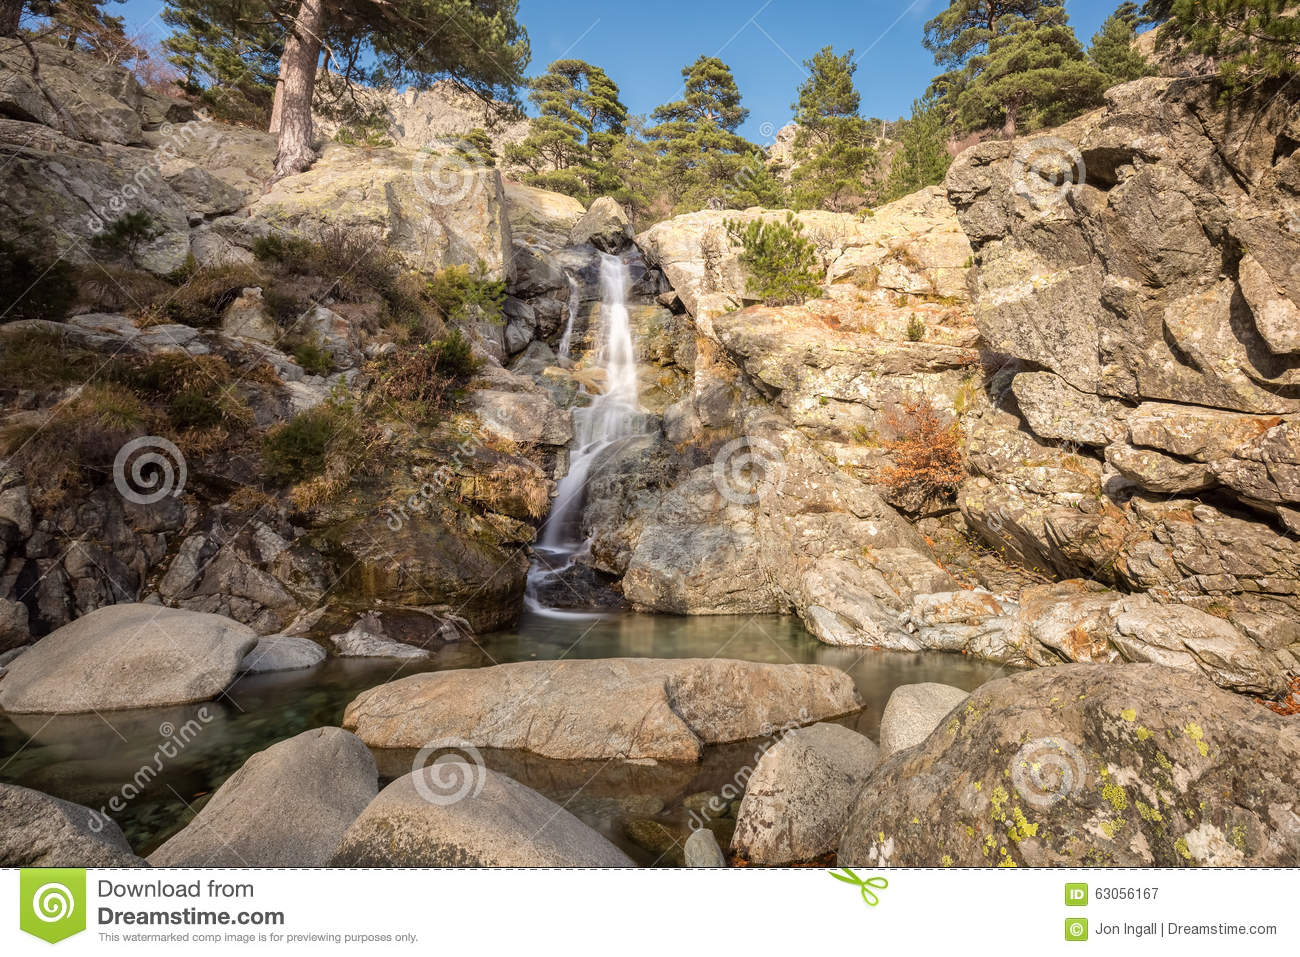 Cascade des anglais waterfall near vizzavona in corsica - Crystal pools waterfall ...